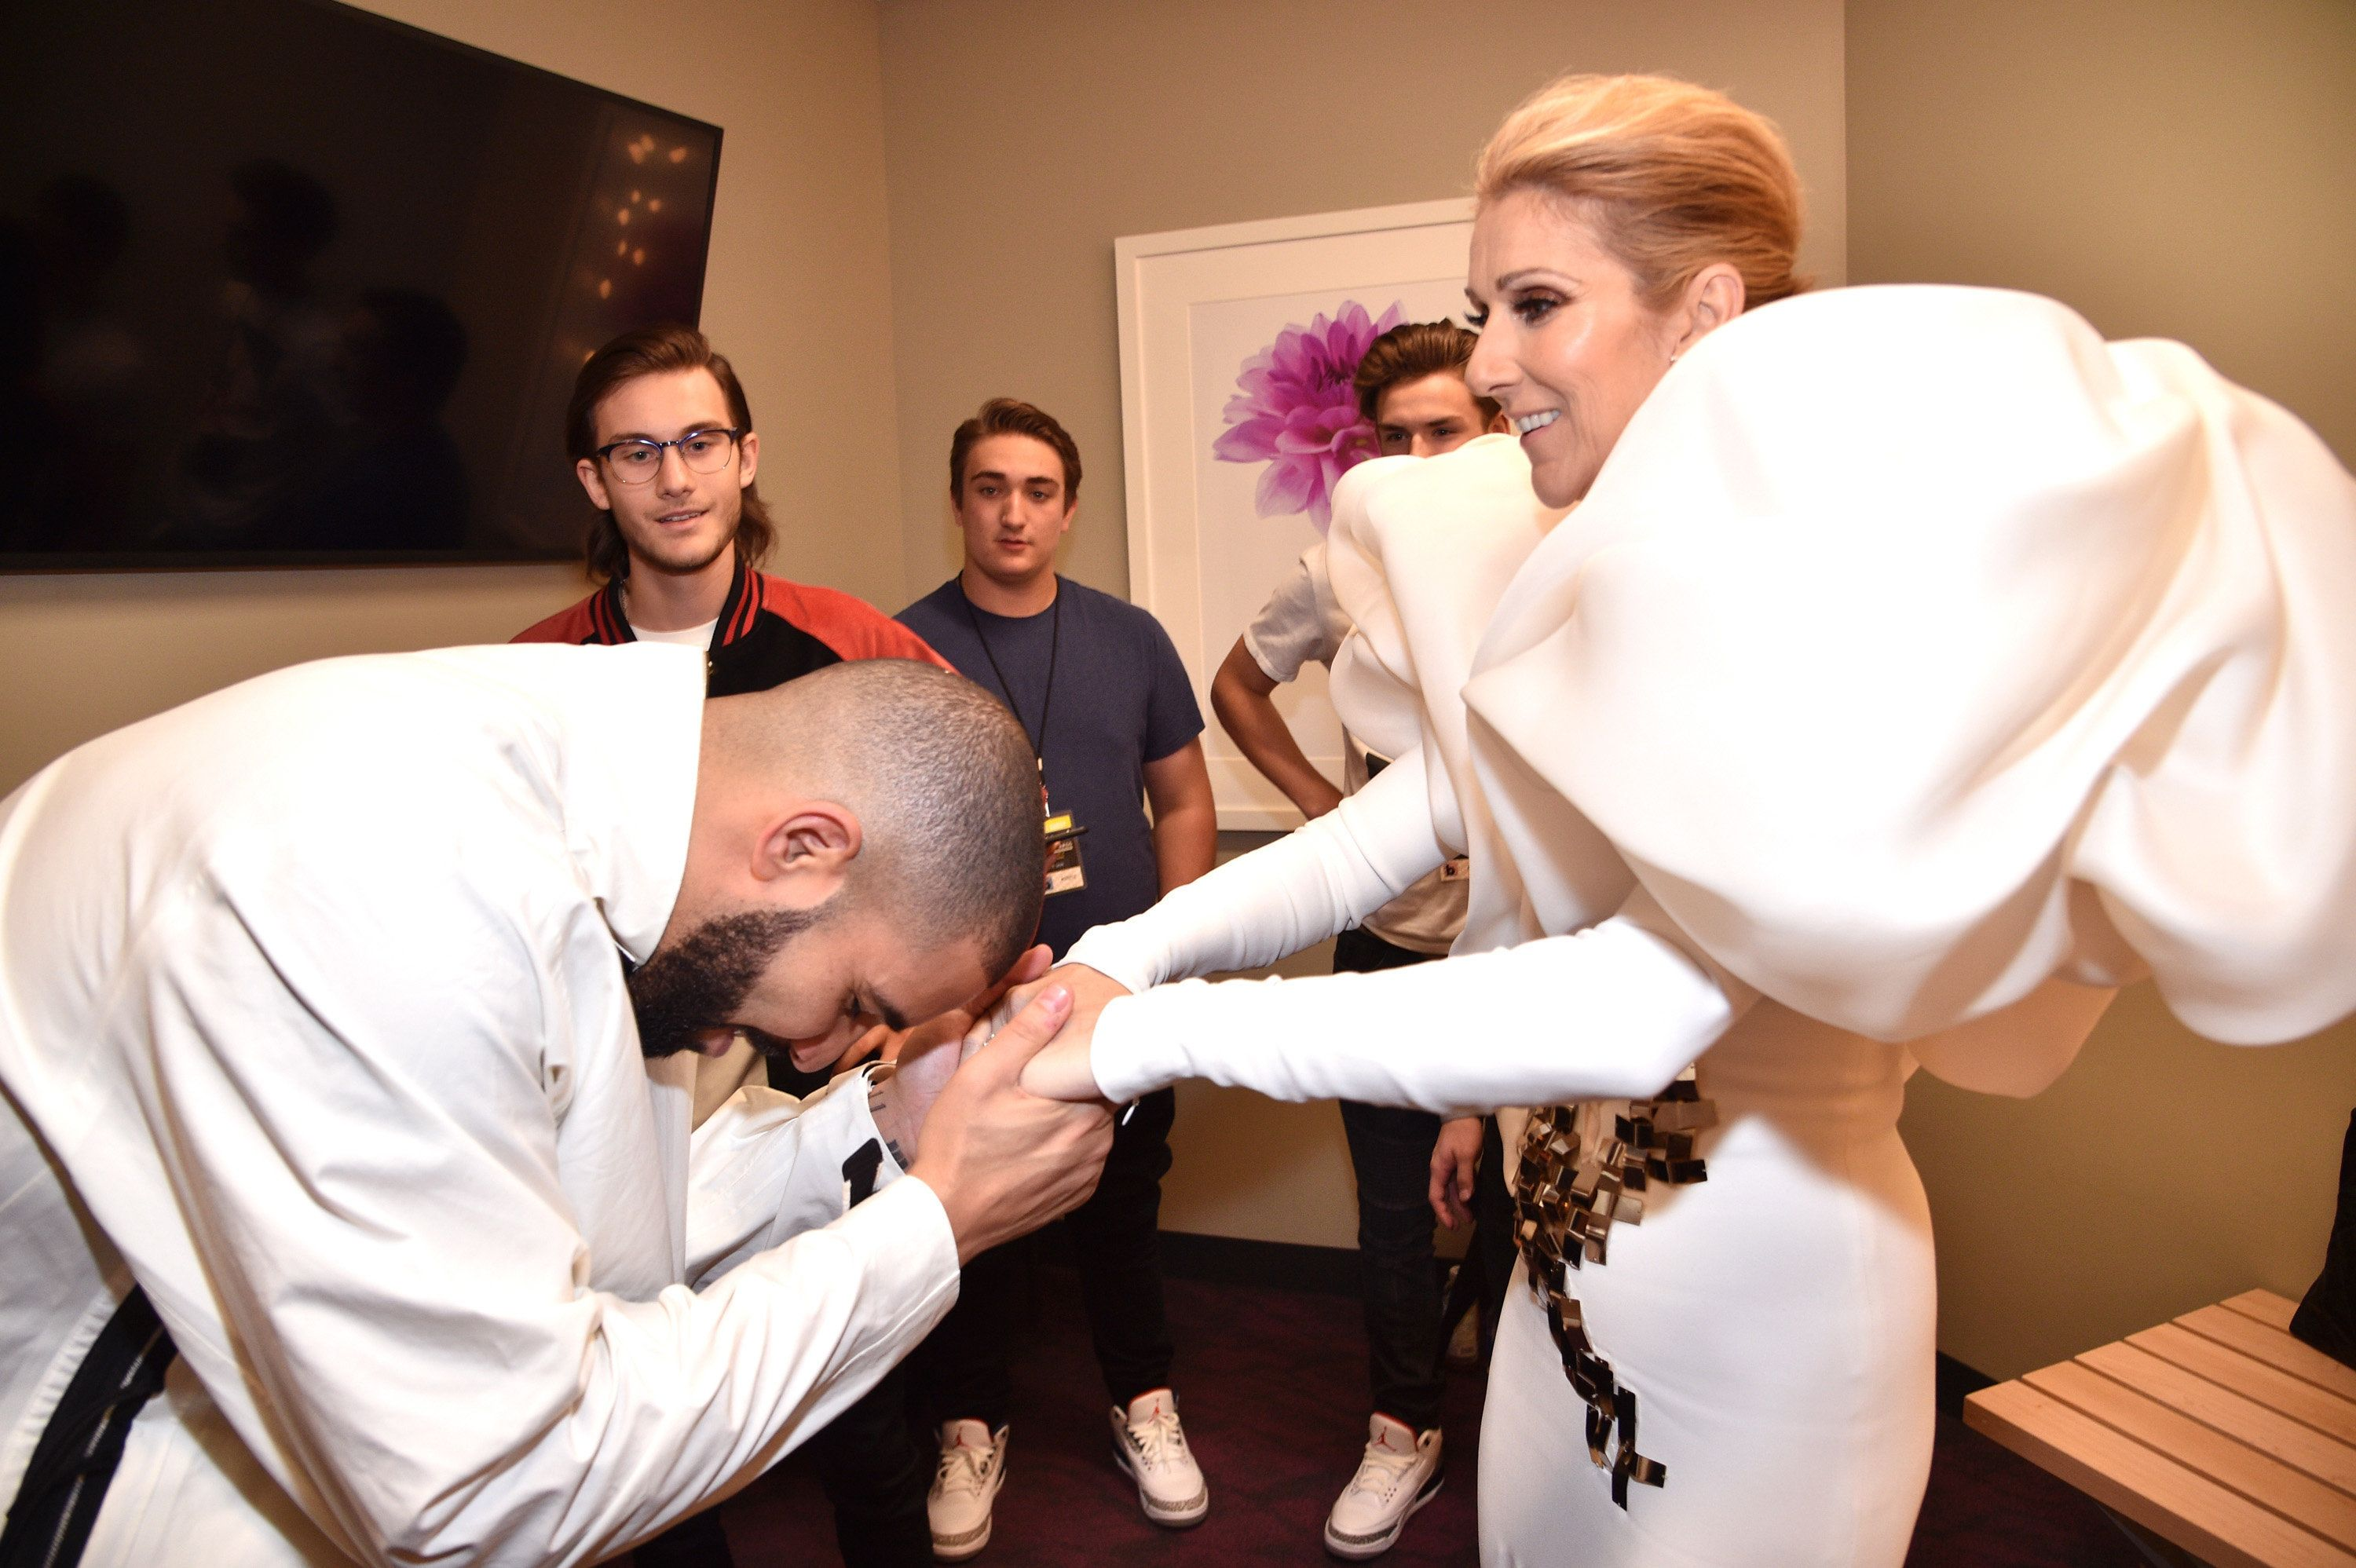 LAS VEGAS, NV - MAY 21:  Recording artists Drake (L) and Celine Dion attend the 2017 Billboard Music Awards at T-Mobile Arena on May 21, 2017 in Las Vegas, Nevada.  (Photo by Kevin Mazur/BBMA2017/Getty Images for dcp)